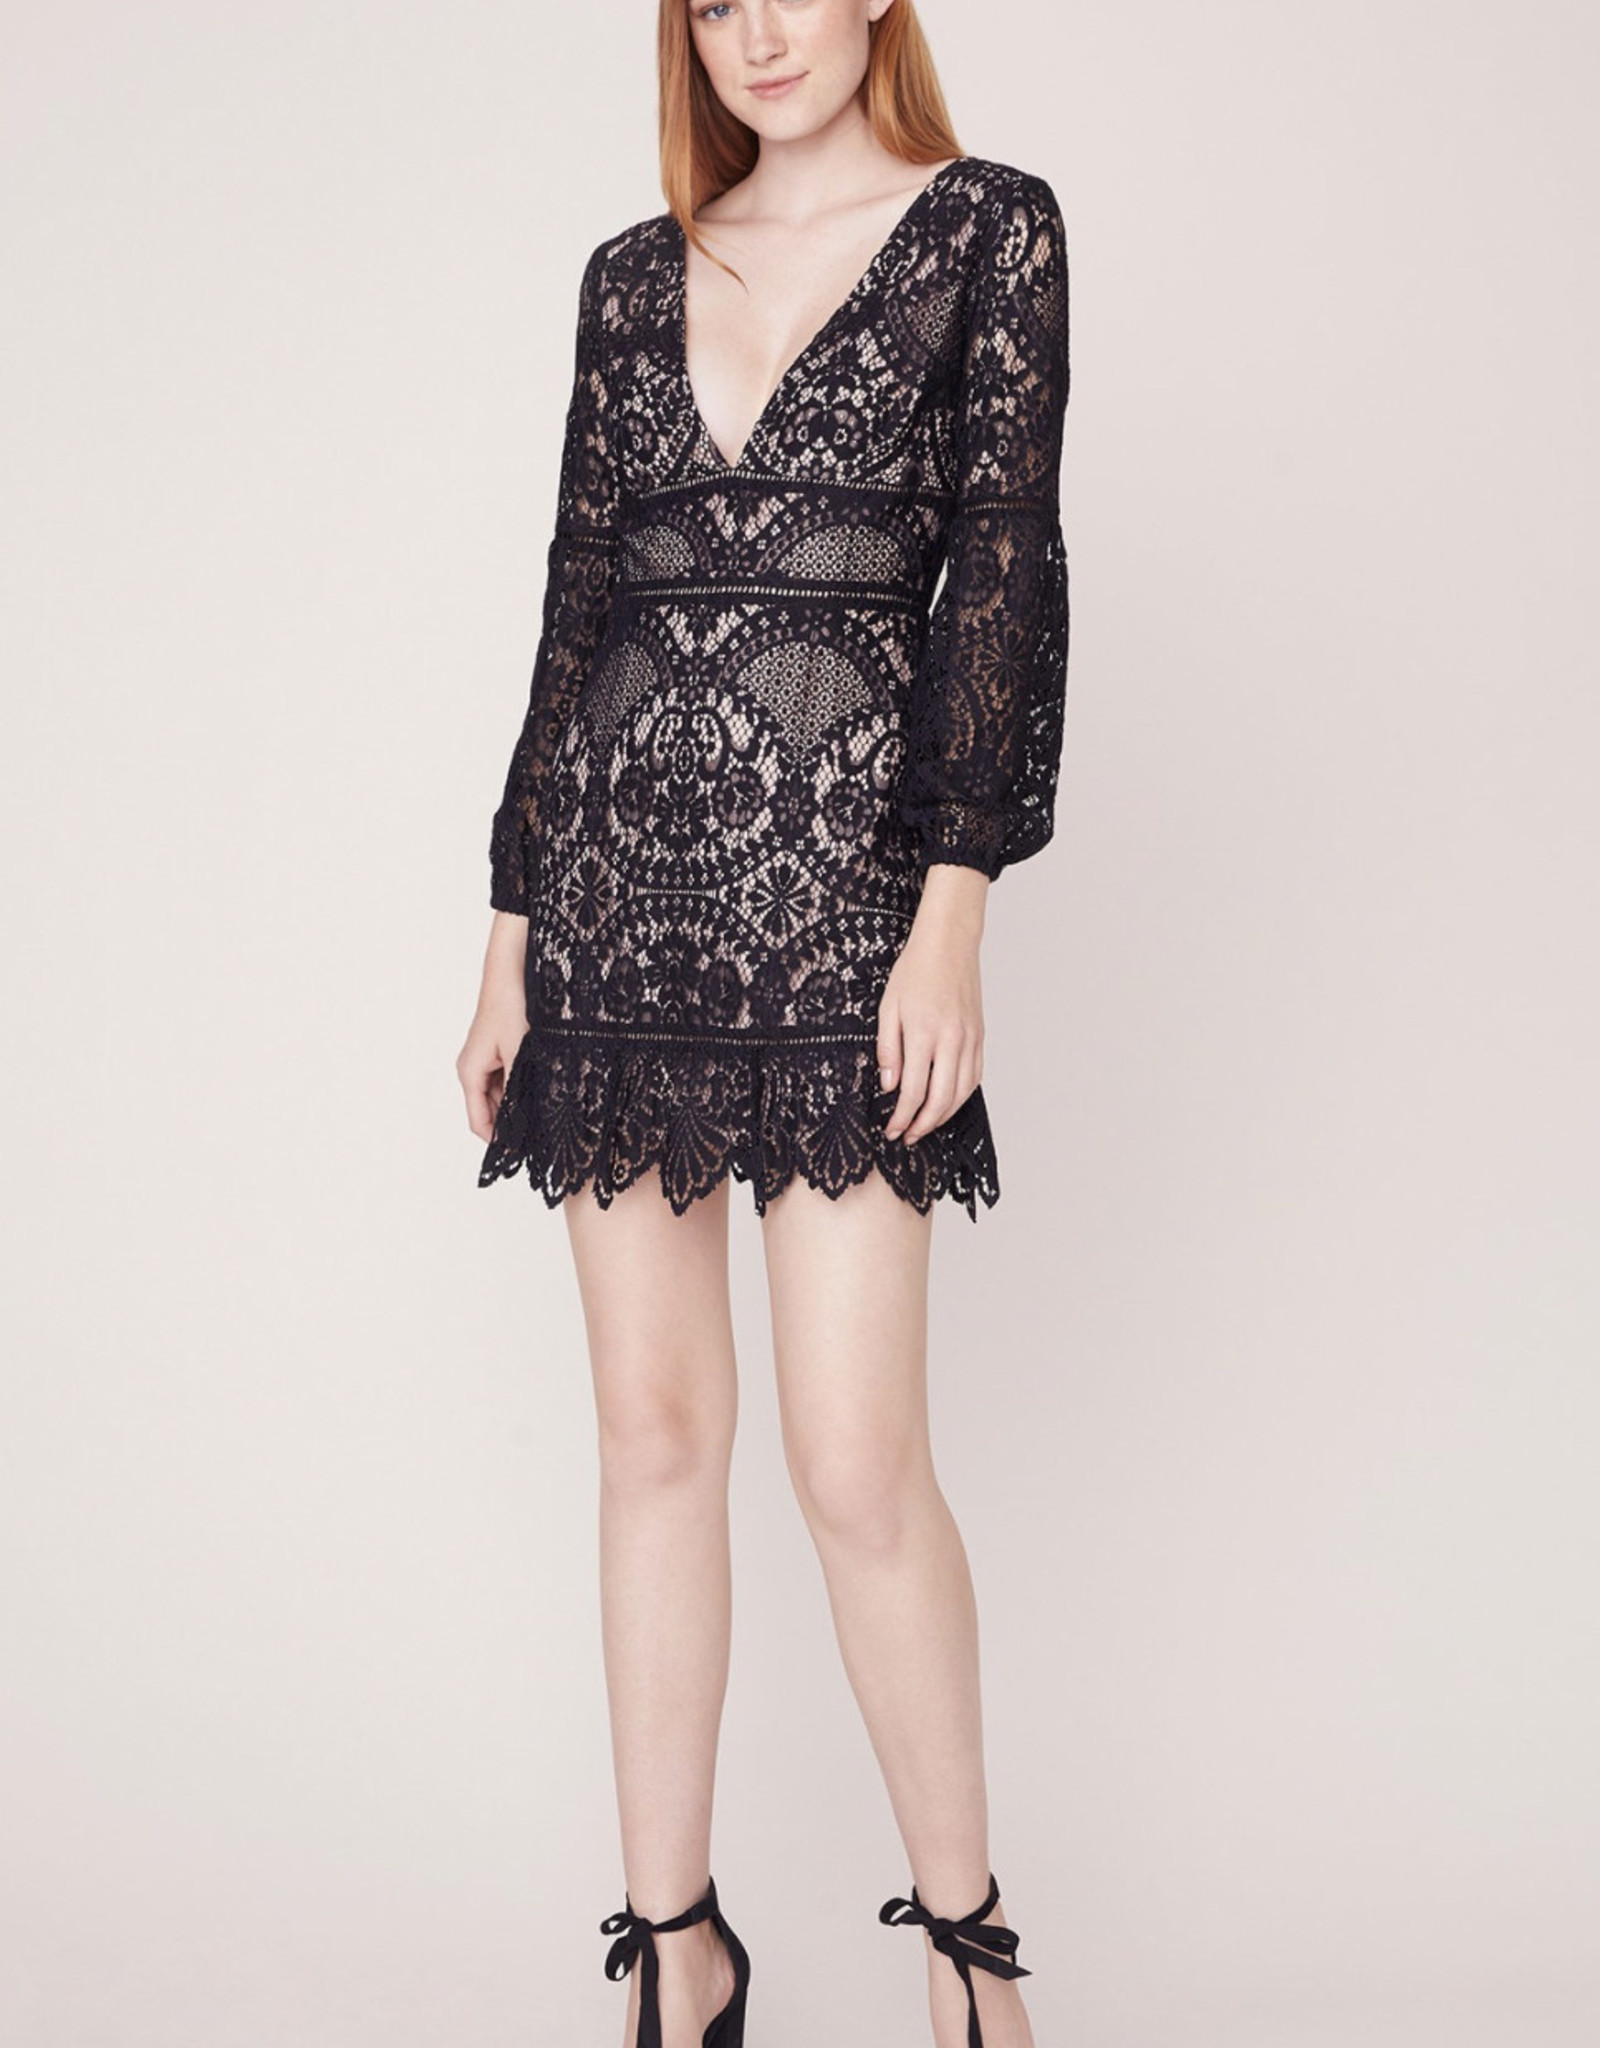 BB DAKOTA That's Deep lace dress